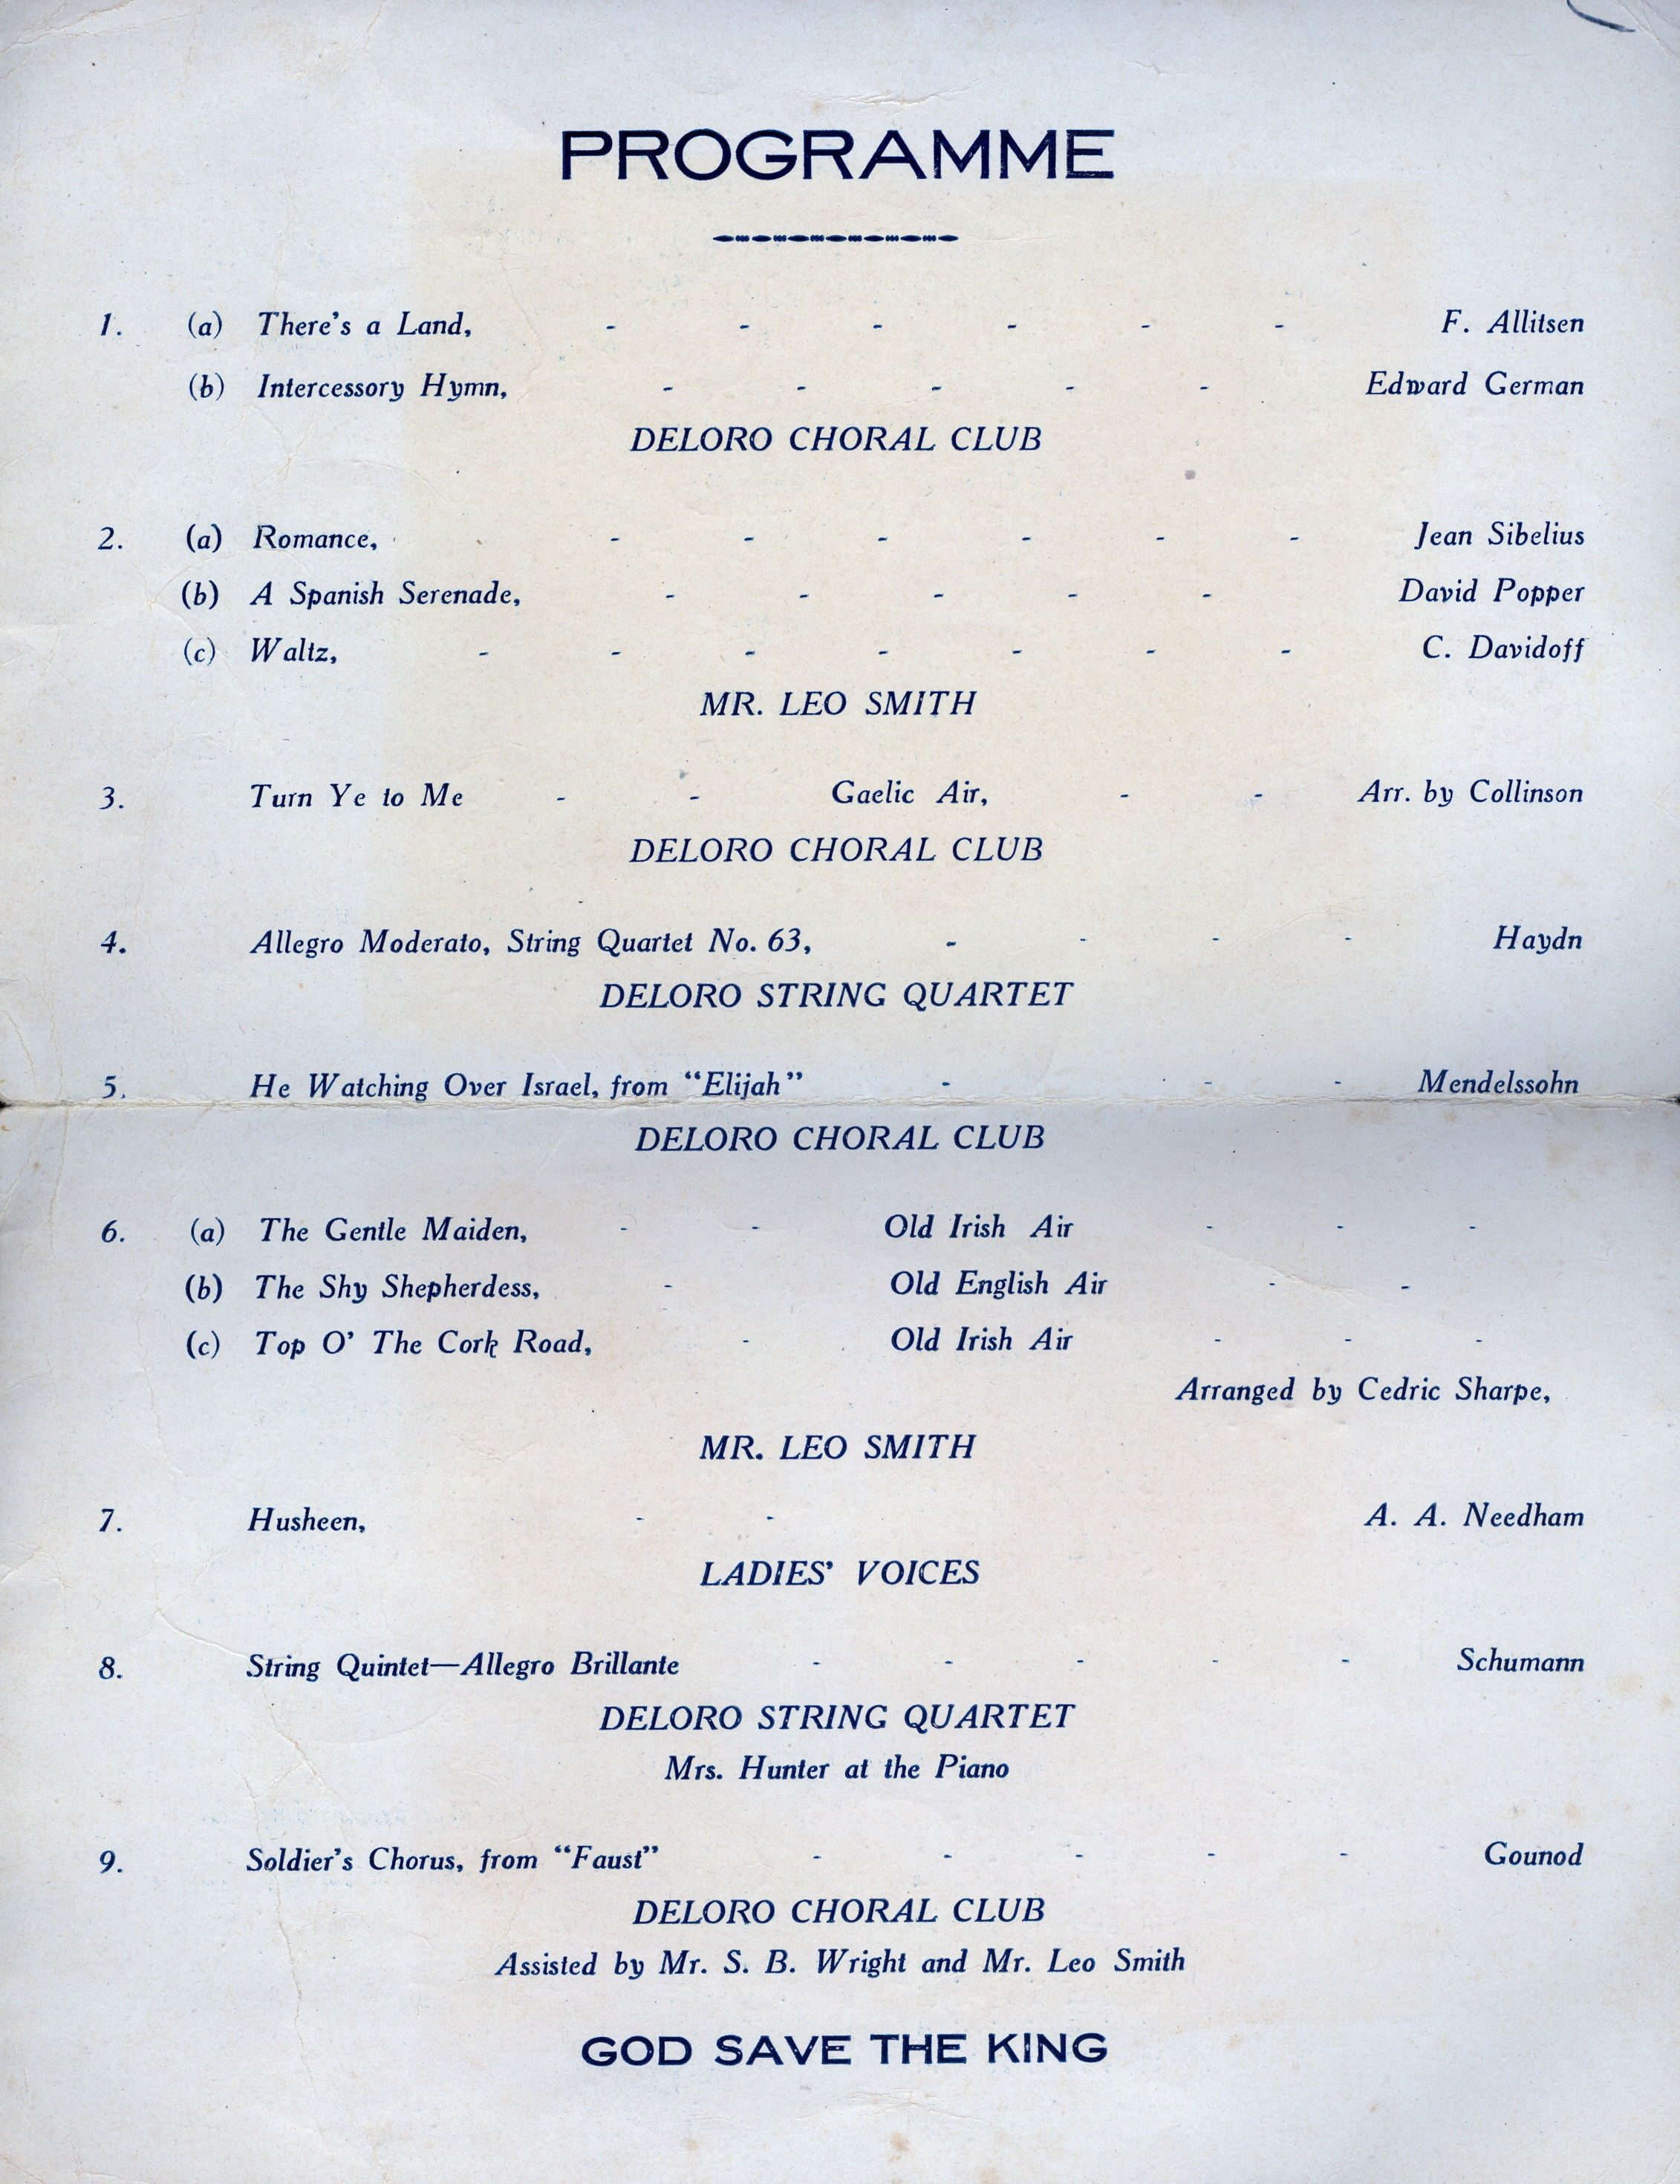 1925 Deloro Choral Club Program.jpg